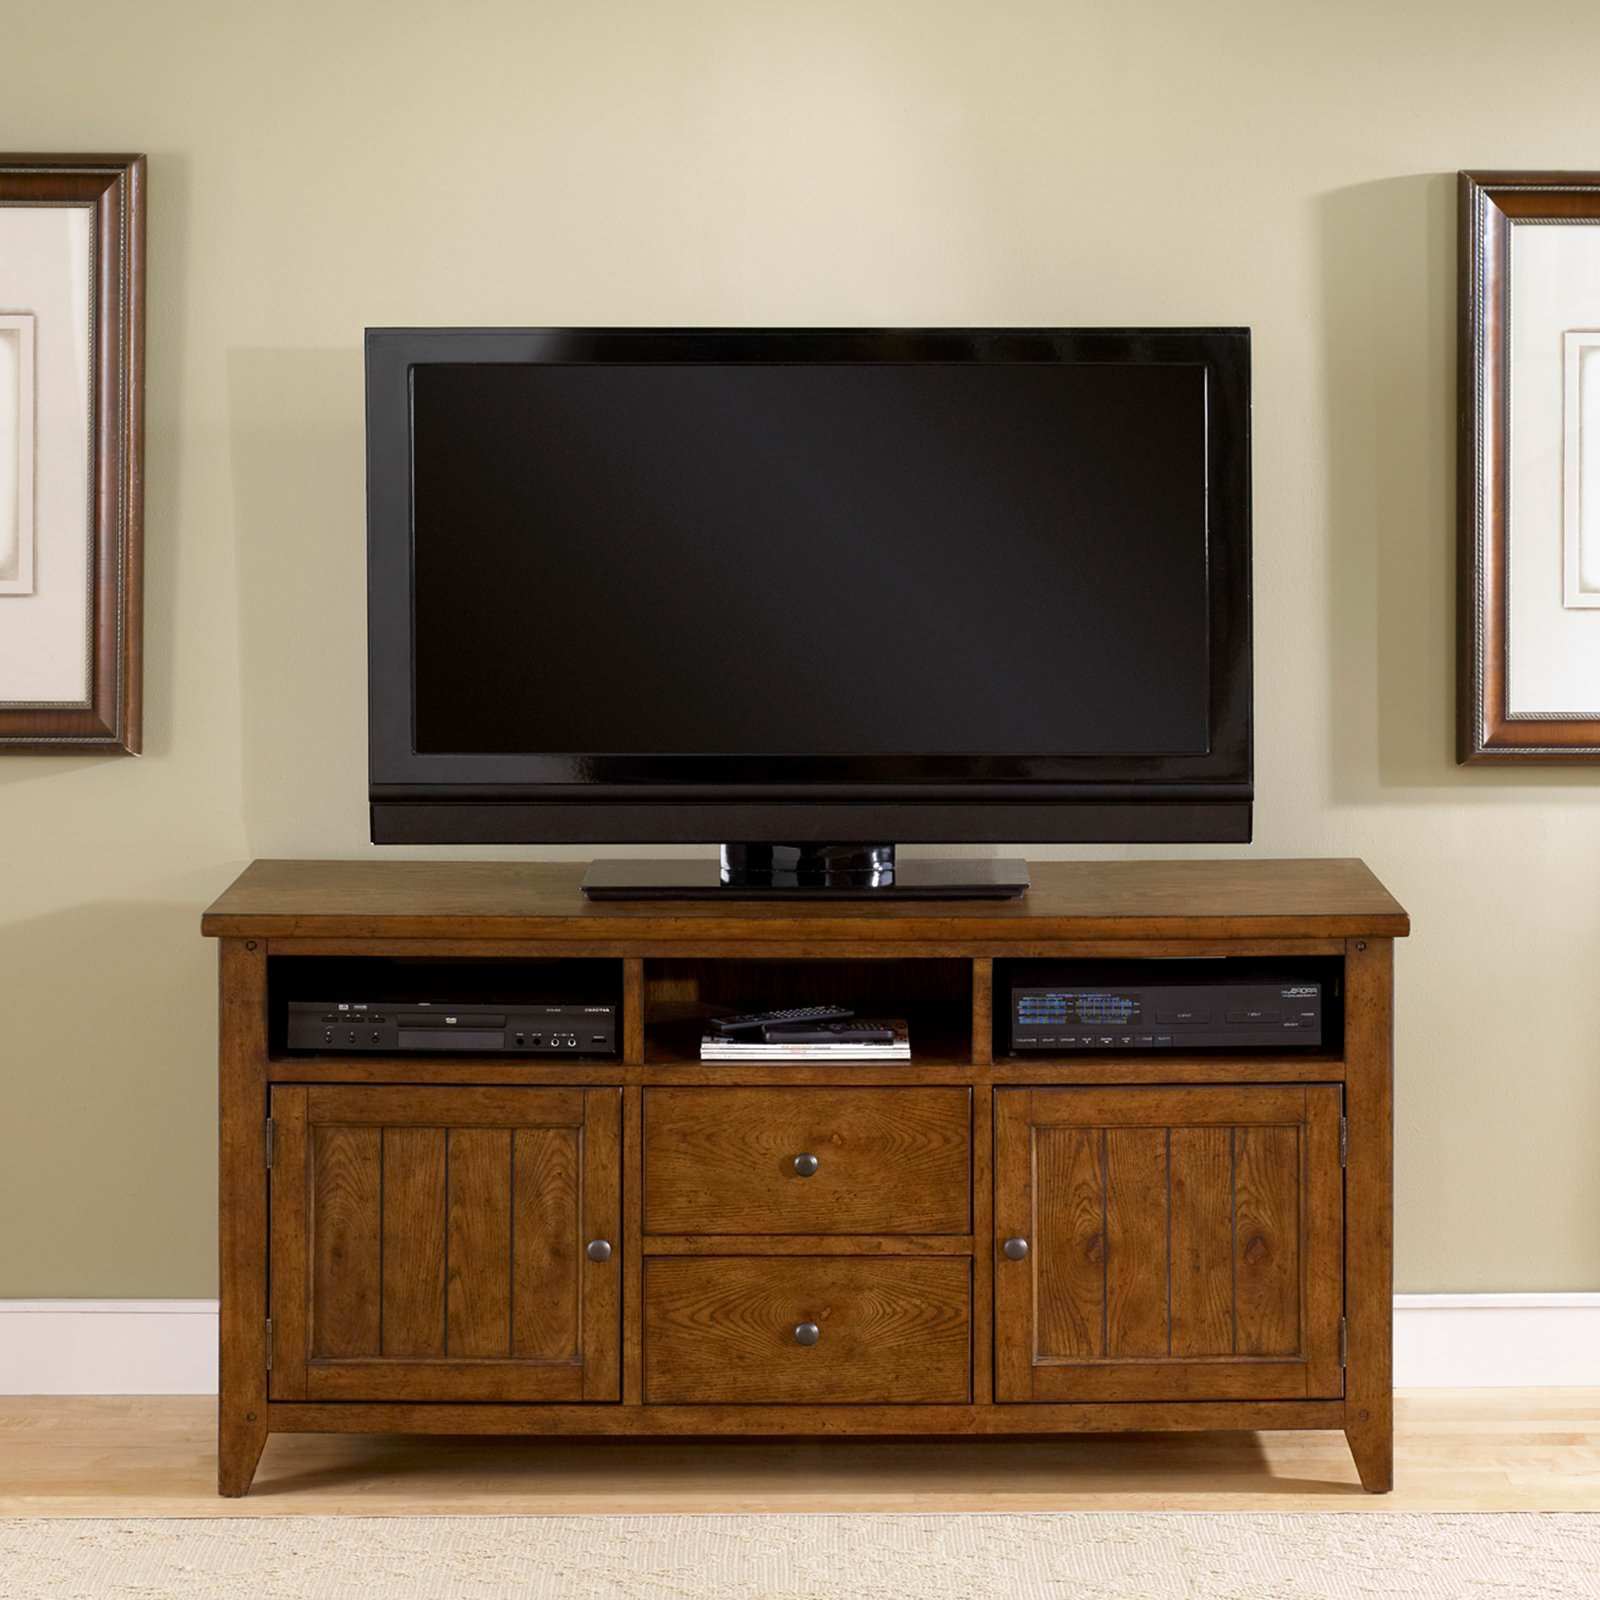 Unique Tv Stands For Flat Screens With Regard To Newest Unique Oak Rustic Tv Stands For Flat Screens : Rustic Tv Stands For (View 12 of 20)